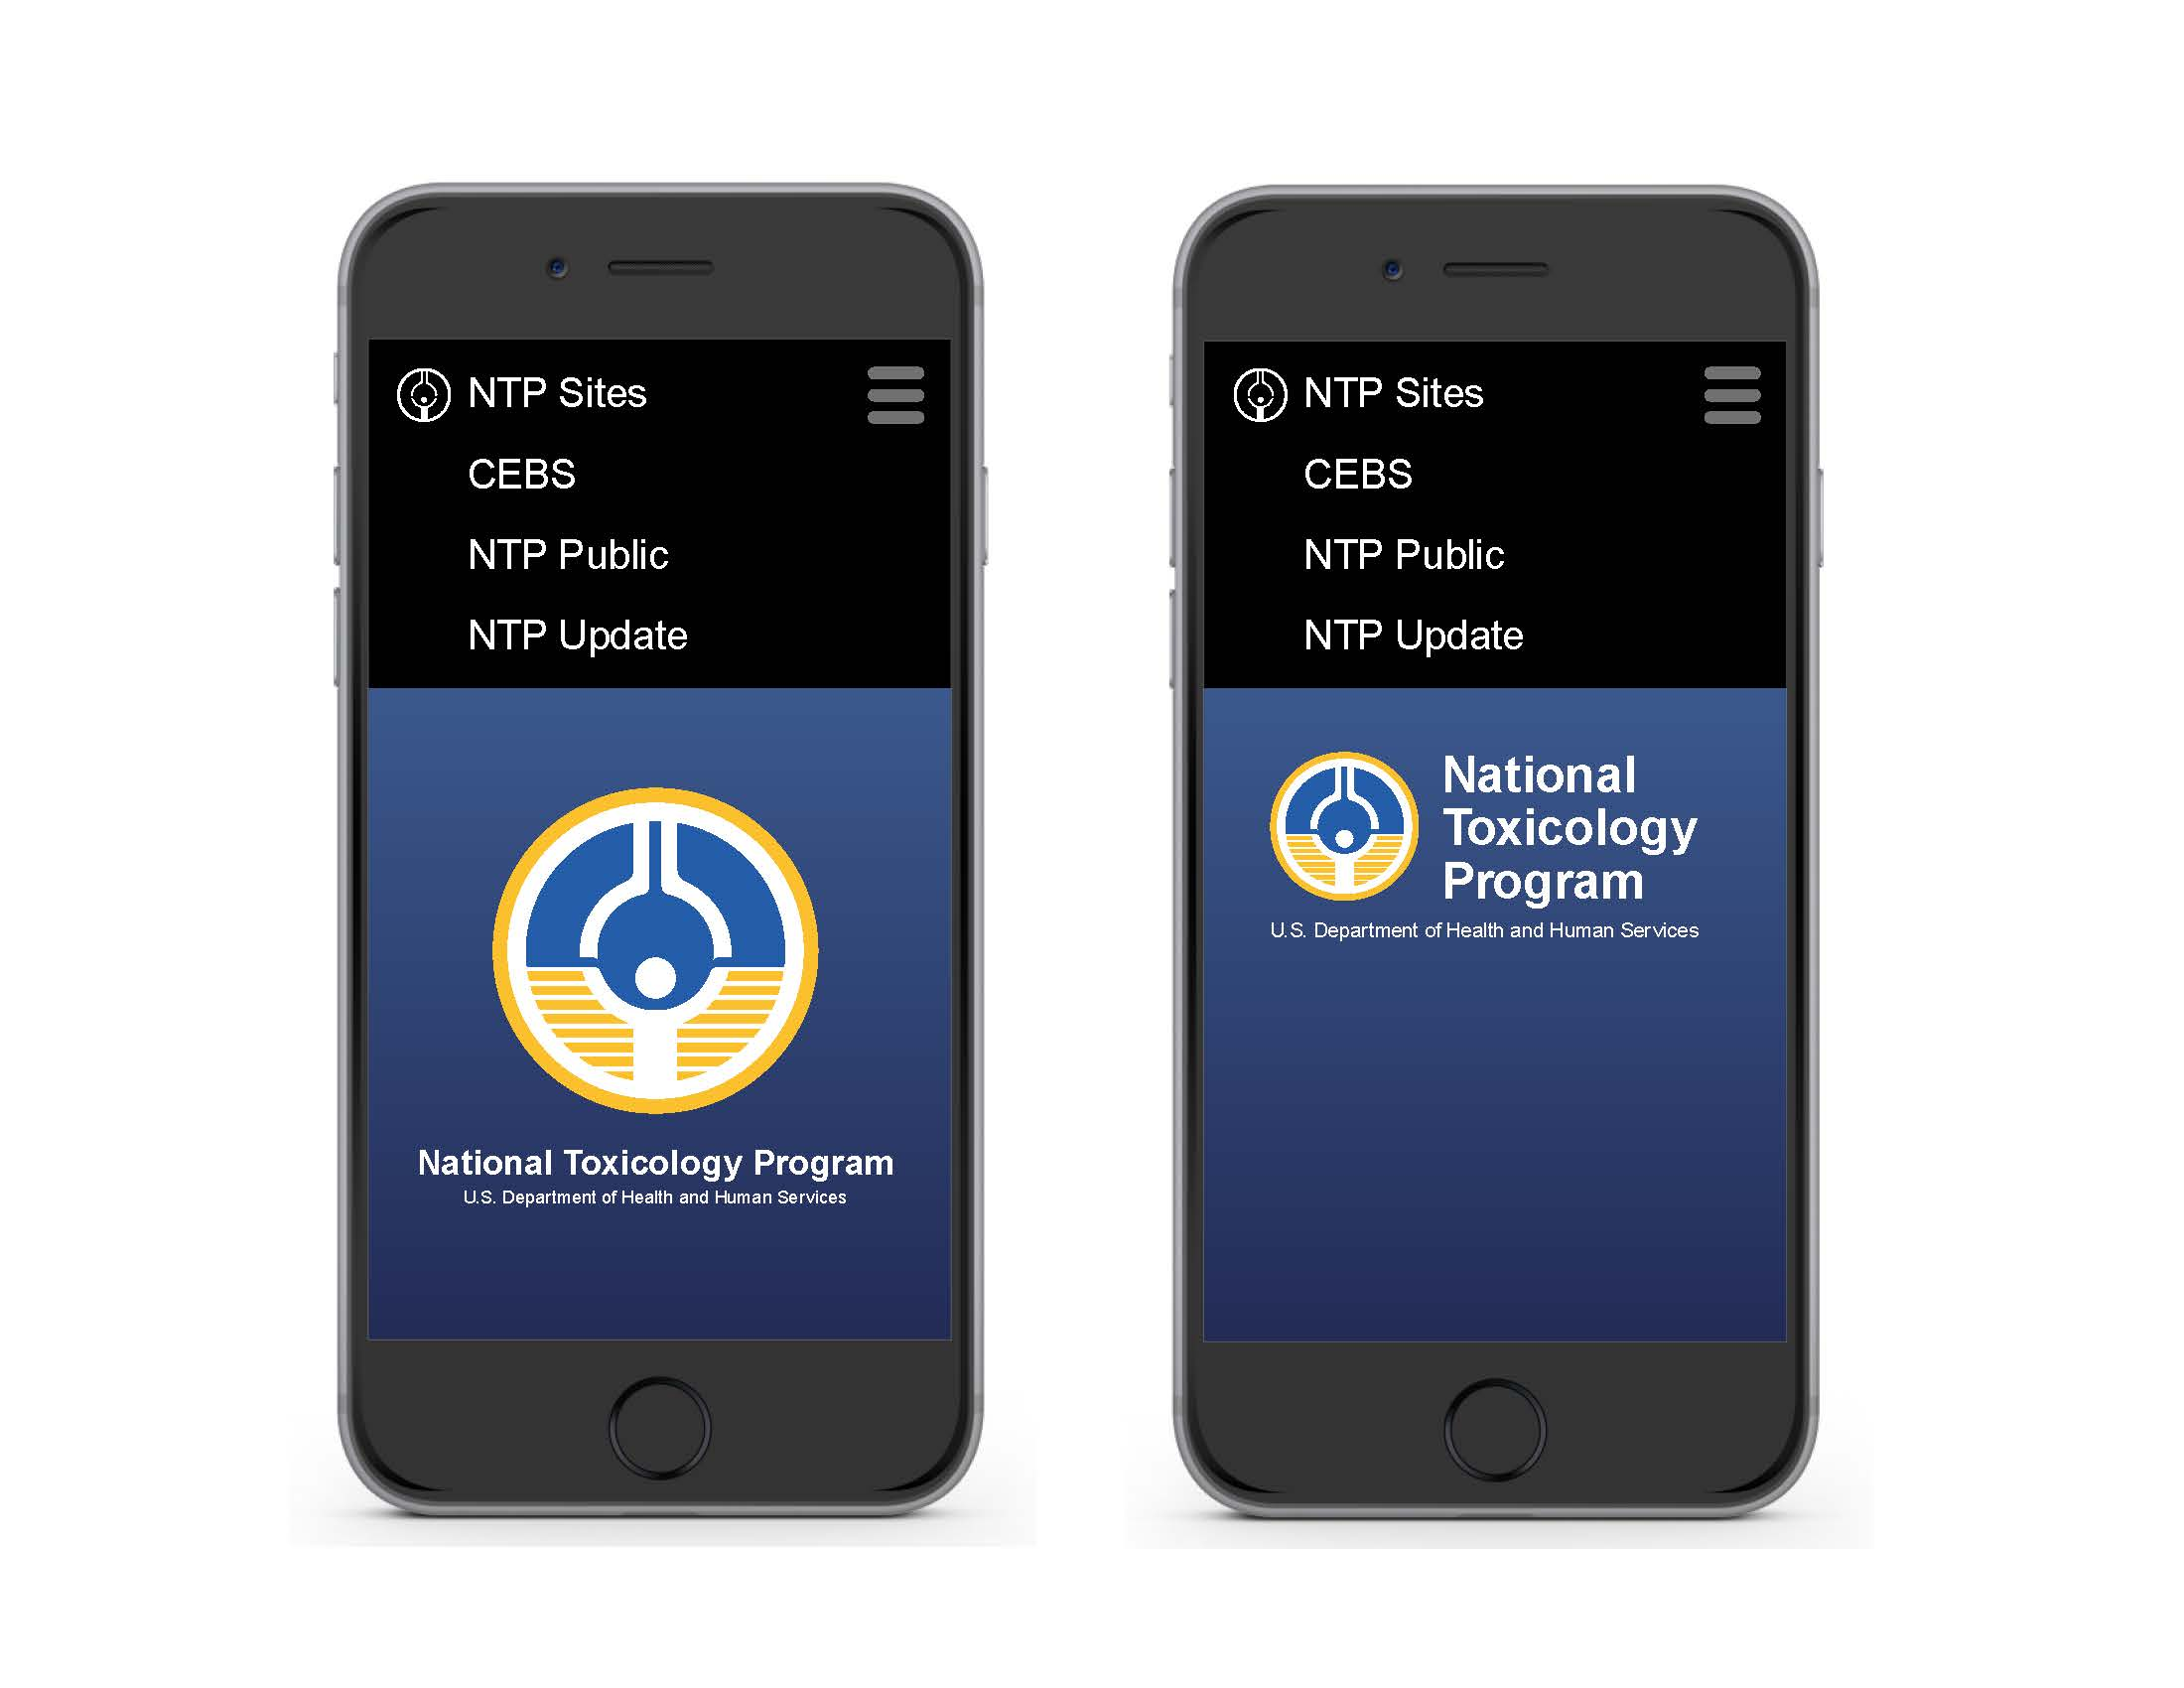 ntp-table-refresh-materialdesign_Page_19.jpg